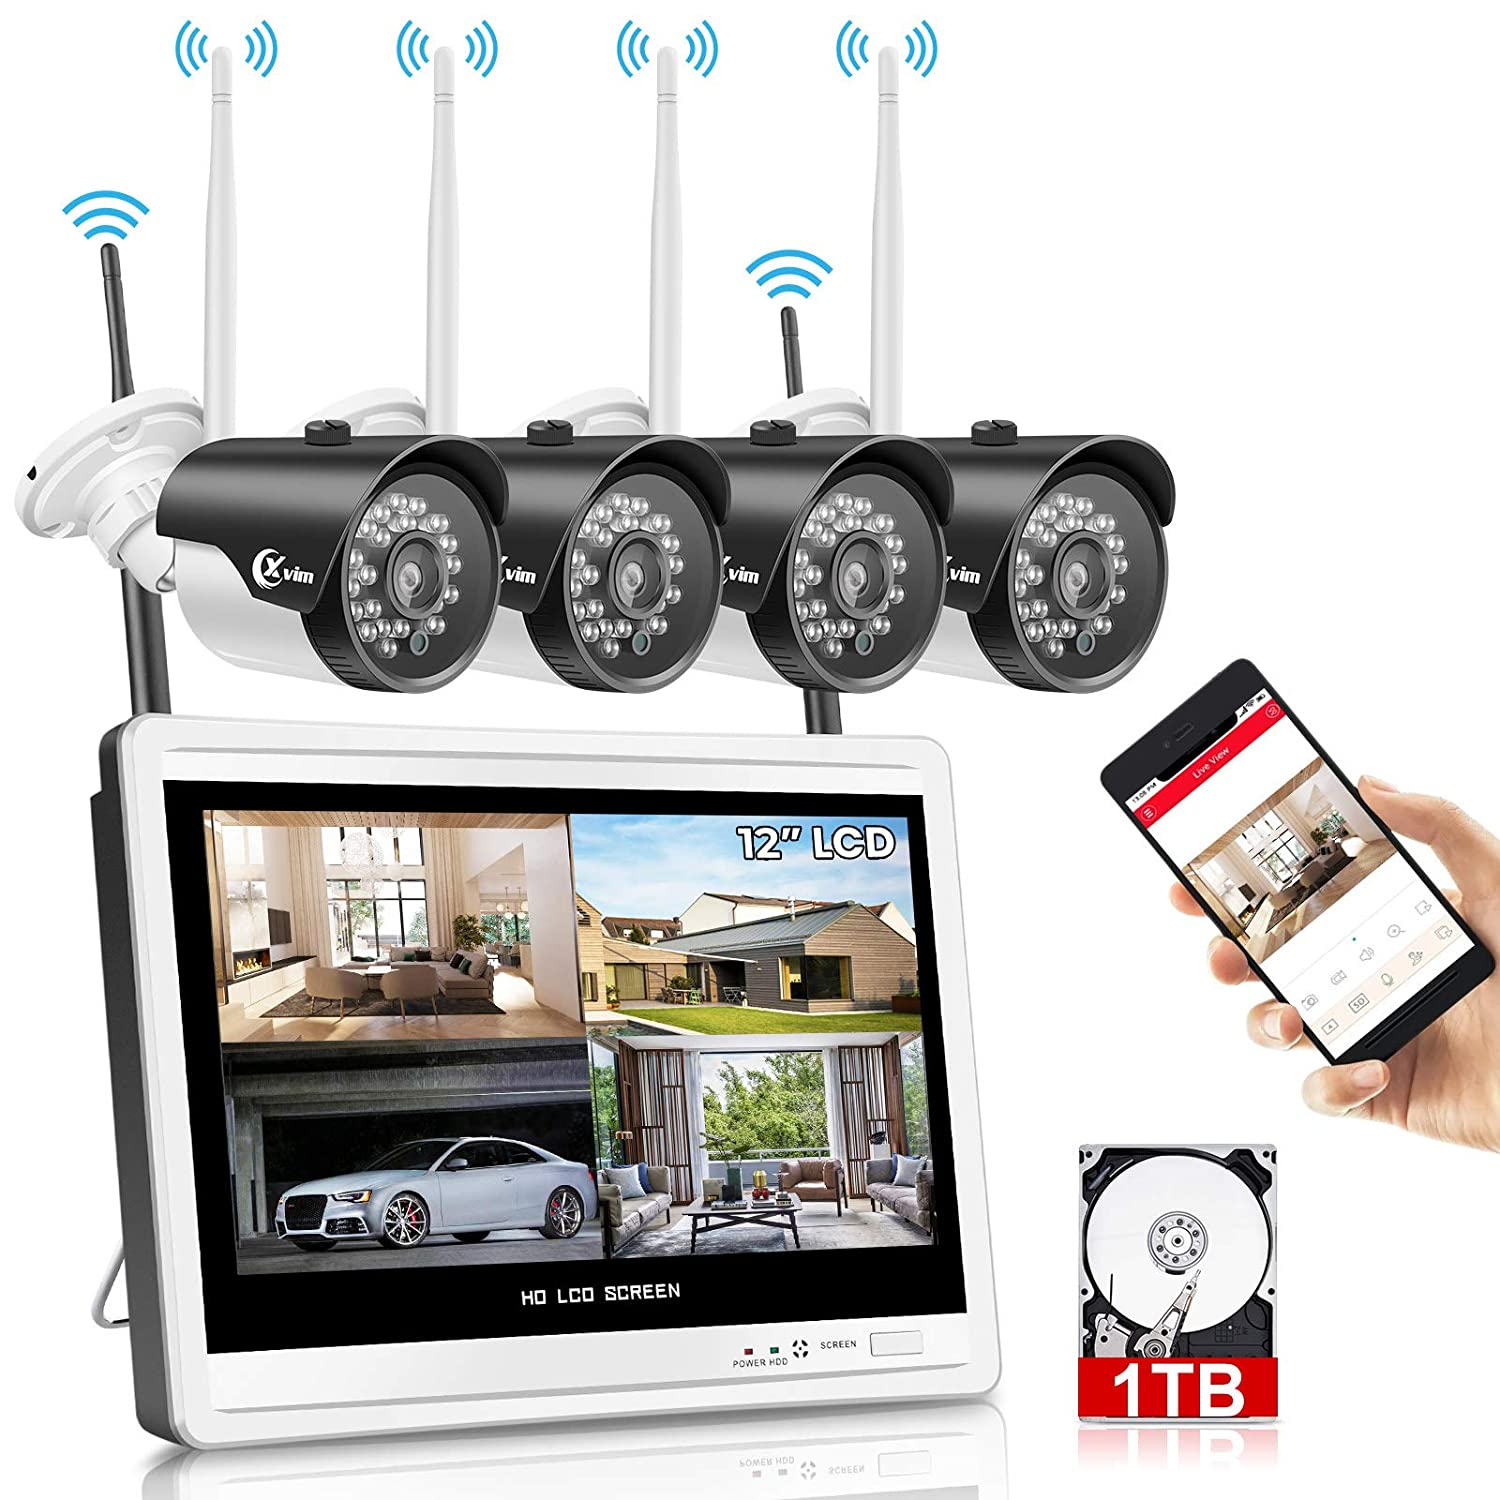 """XVIM 12"""" Monitor Wireless Security Camera System for Home, 4pcs 2.0MP Outdoor Waterproof IP Cameras, 4 Channel HD 1080P WiFi Video Surveillance Cameras NVR Kits,Easy Remote View"""